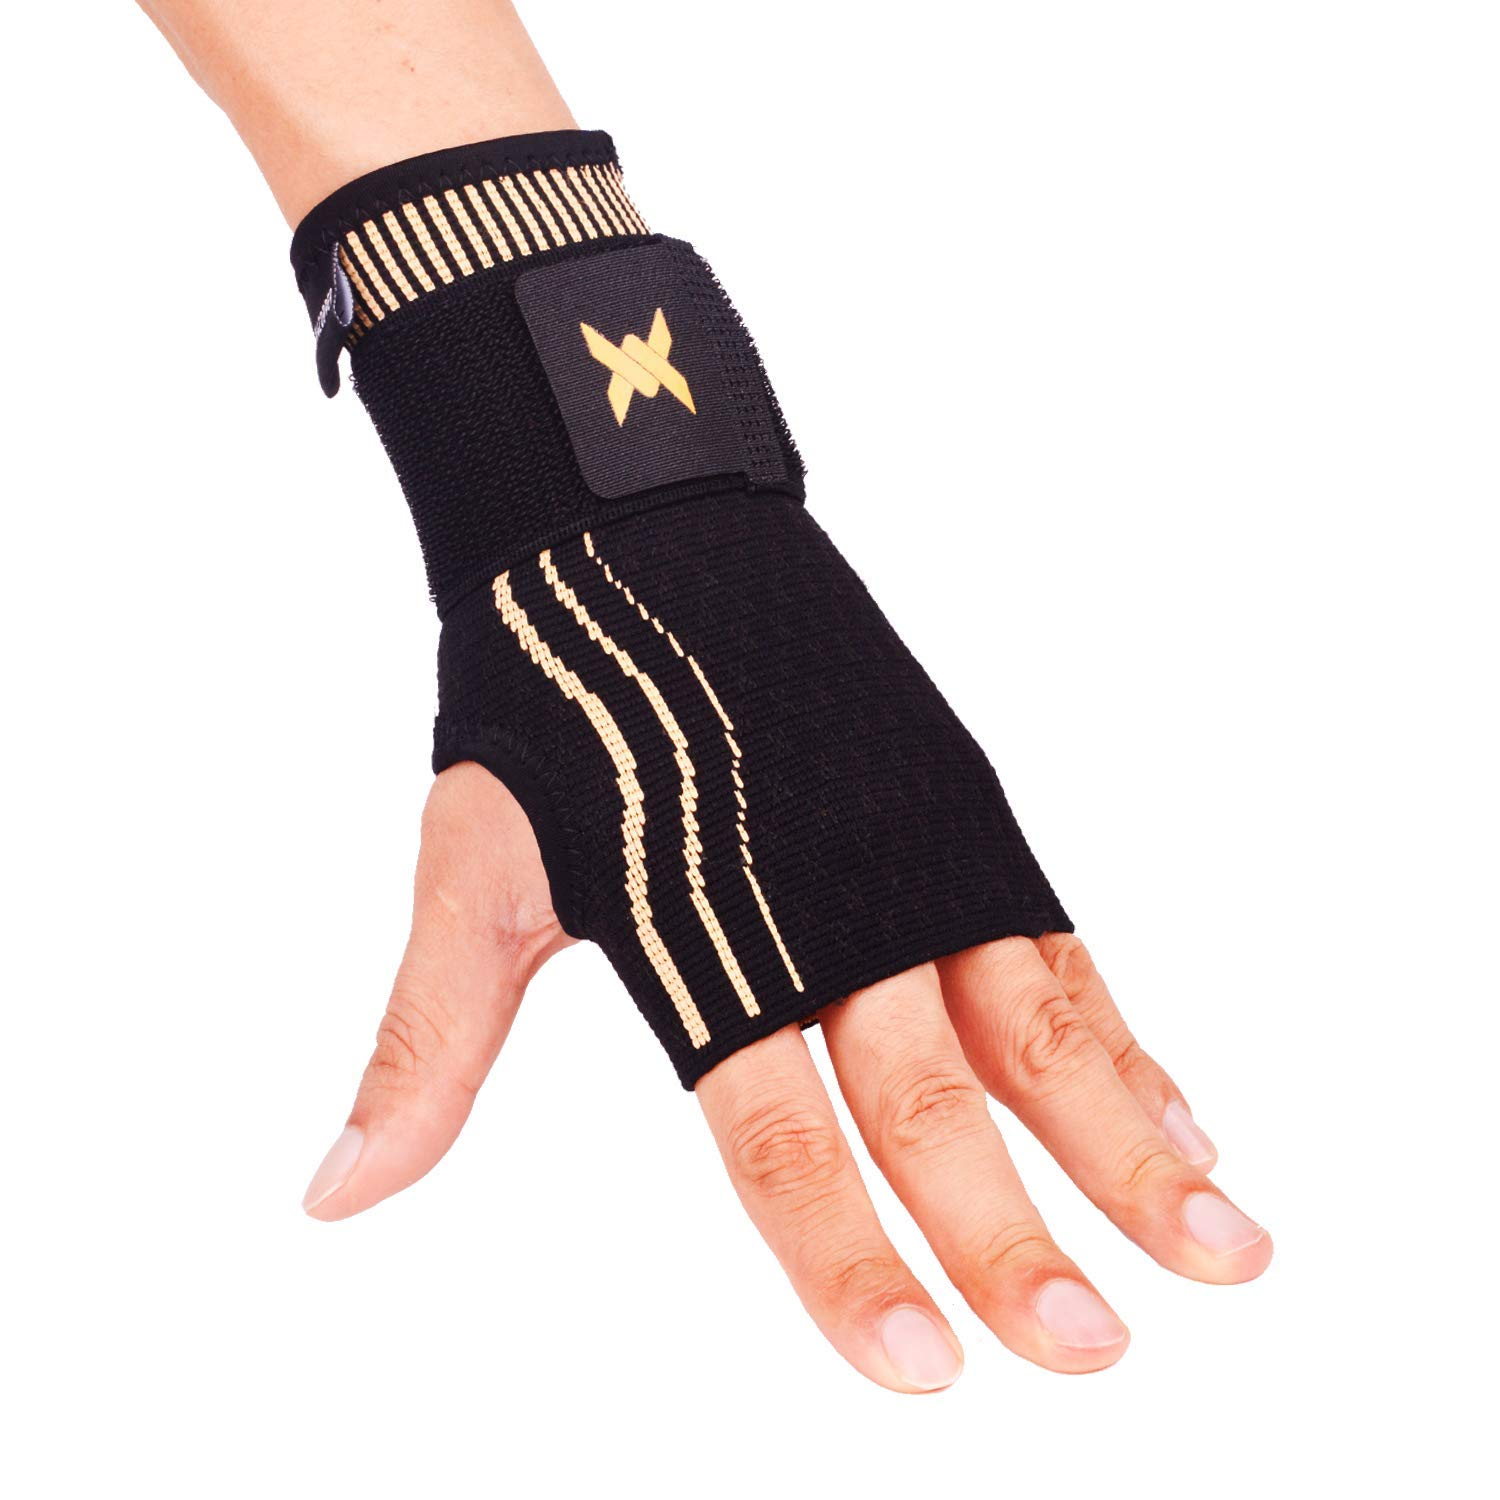 34c7026f46 Get Quotations · Thx4 Copper Wrist Sleeve with Adjustable Strap for Extra  Support -Copper Infused Compression Wrist Brace